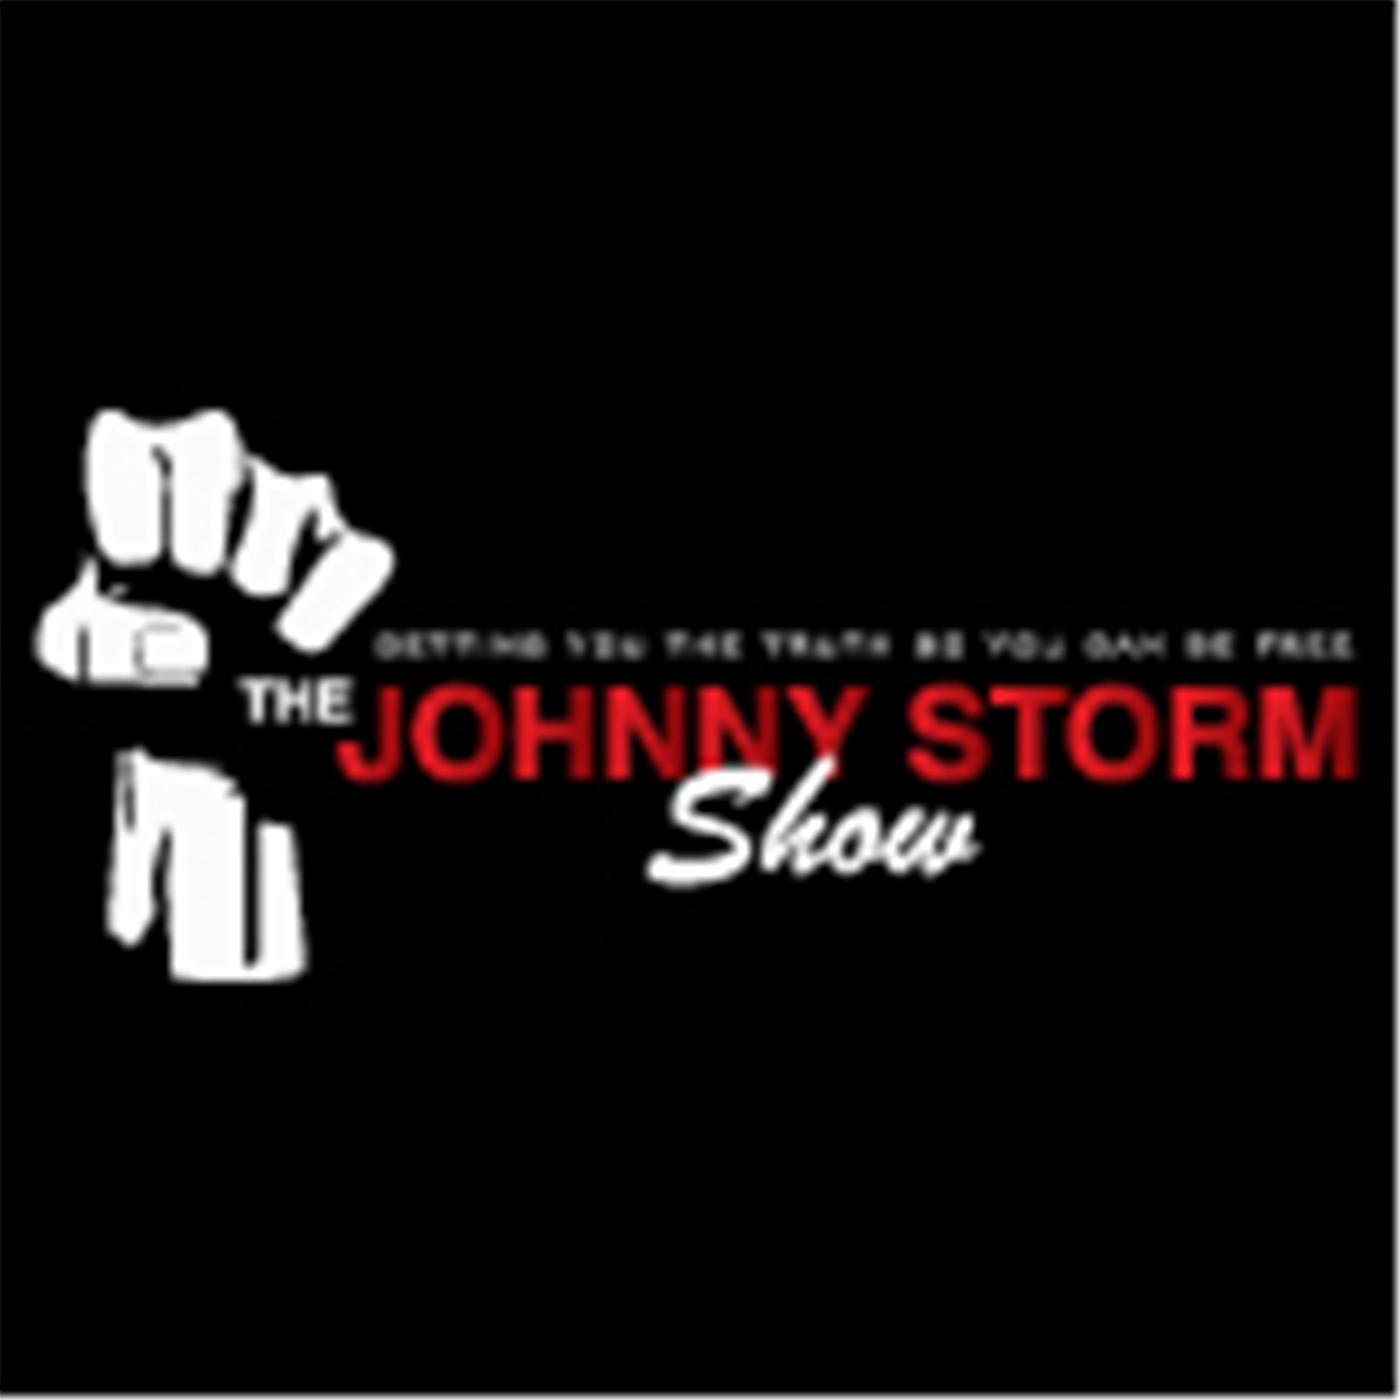 The Johnny Storm Show